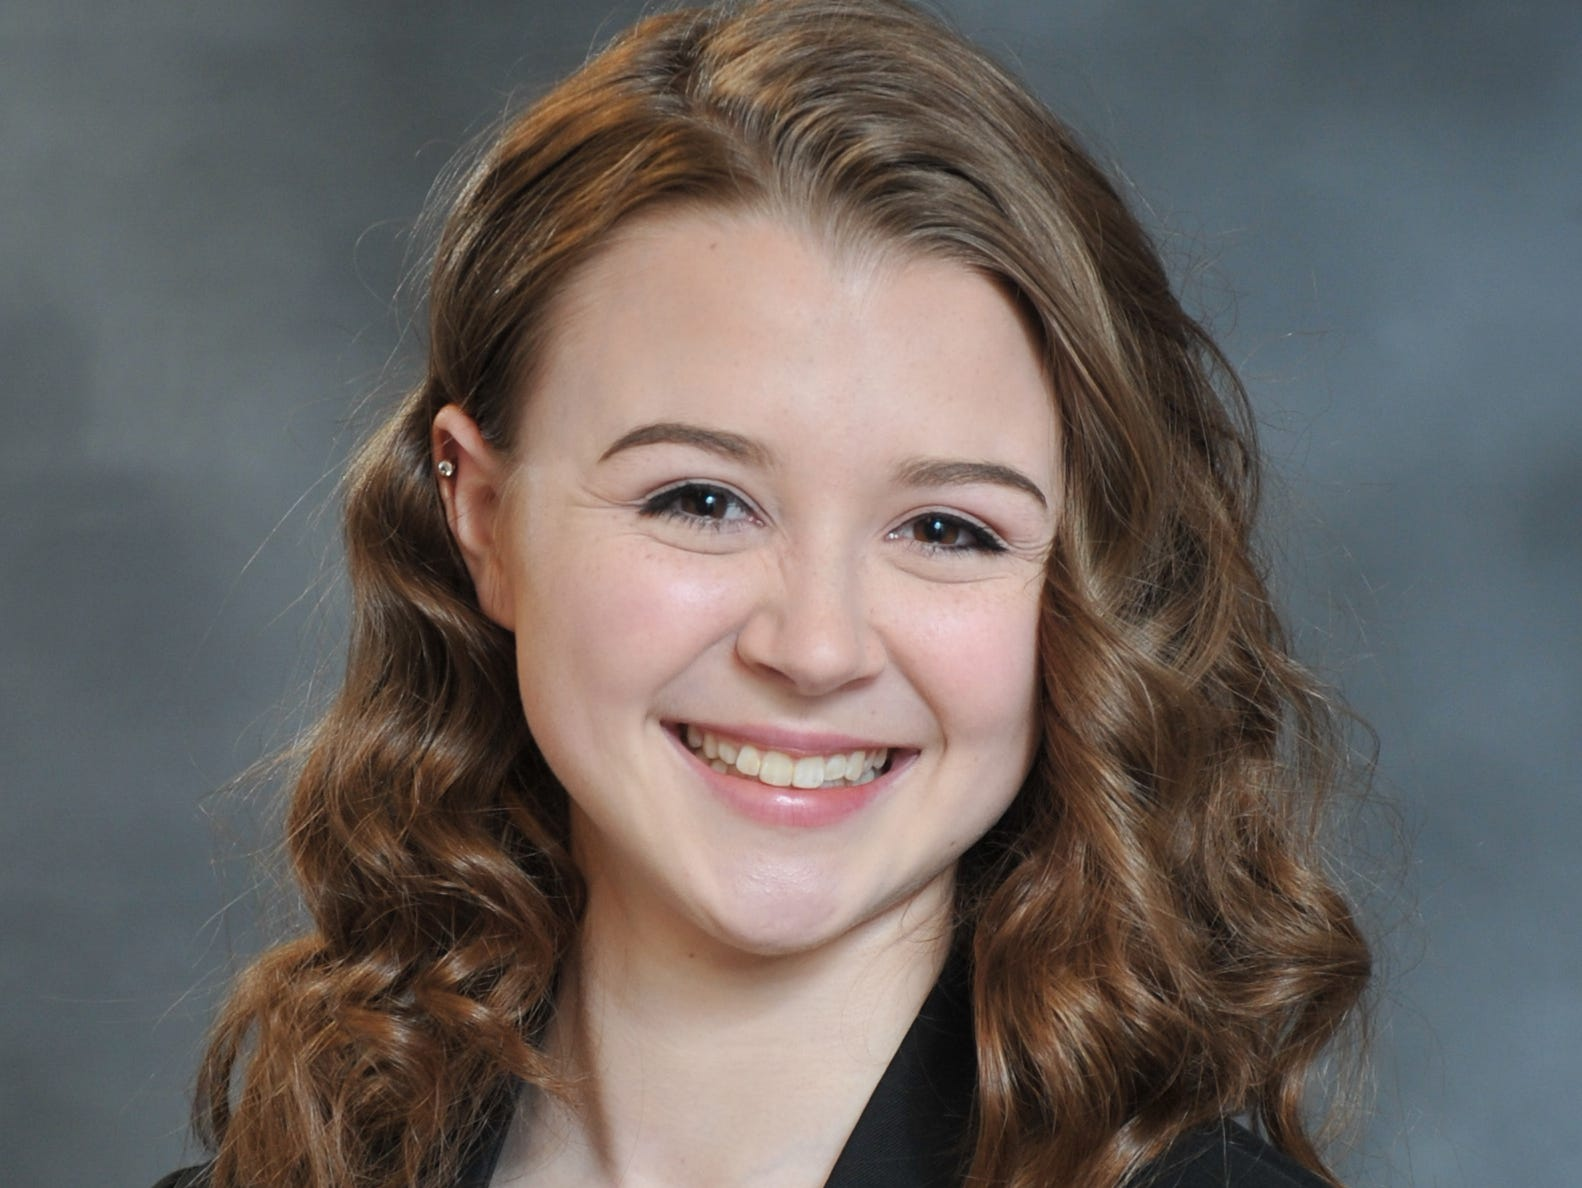 Lily Haugh, Northeastern High School, Distinguished Young Women of York County participant.